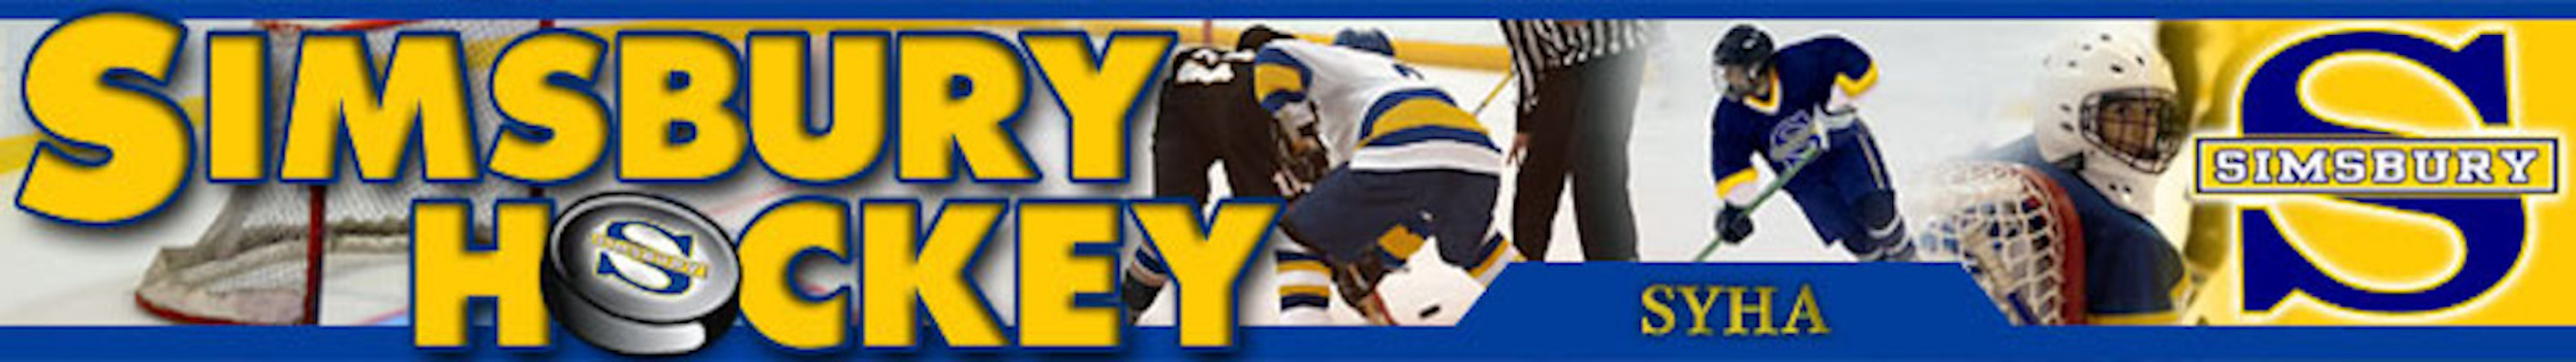 Simsbury Youth Hockey, Hockey, Goal, Rink